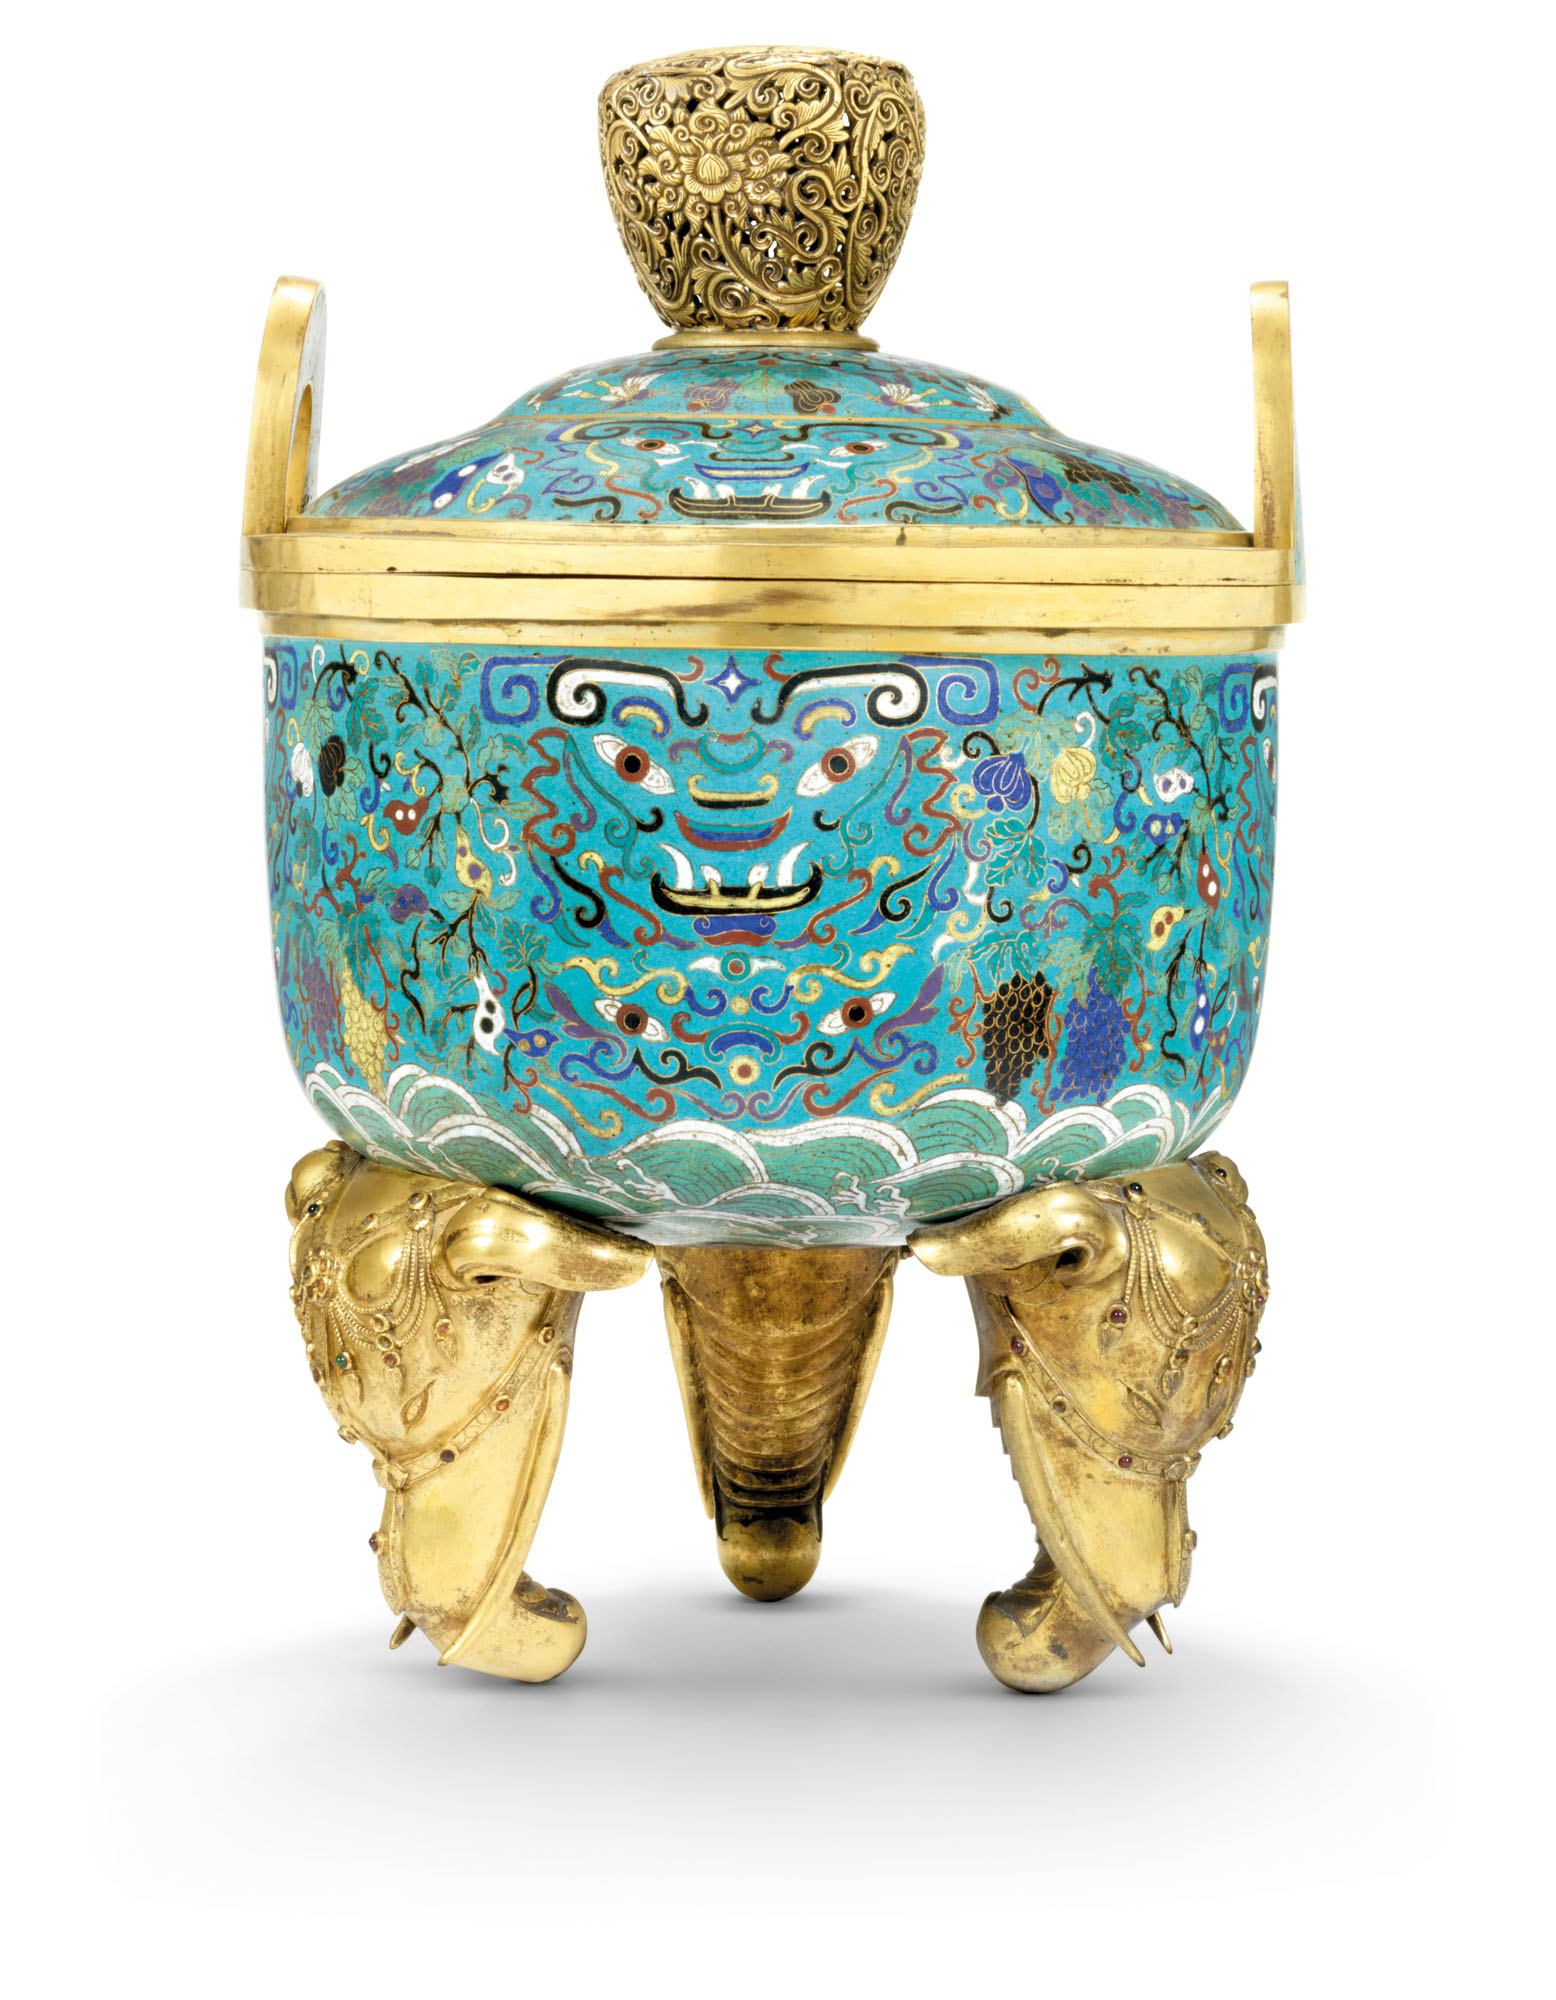 A RARE LARGE CLOISONNE ENAMEL CIRCULAR TRIPOD CENSER AND COVER